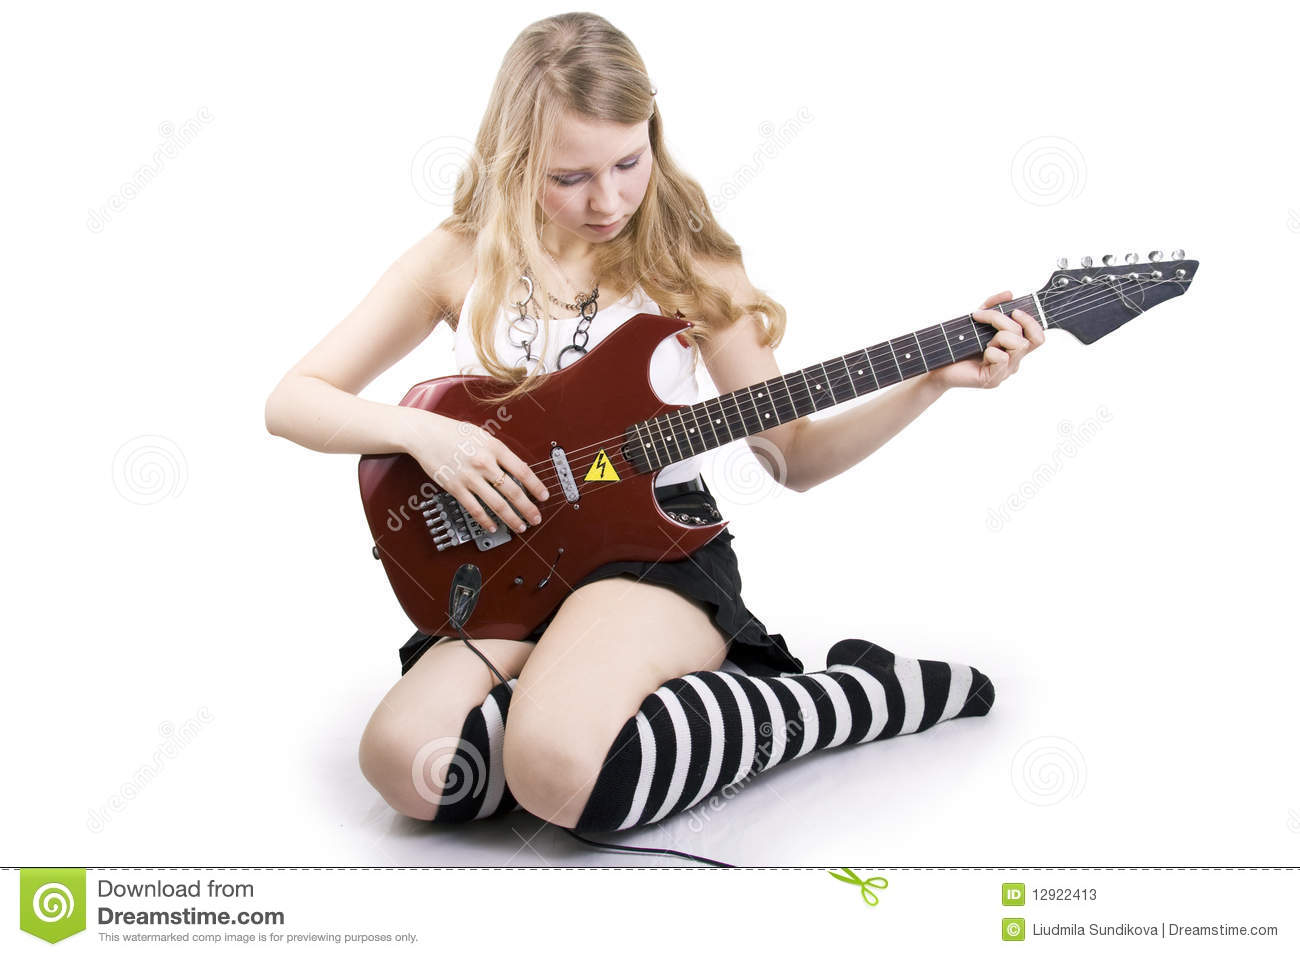 girl guitar player stock image image of curly arts 12922413. Black Bedroom Furniture Sets. Home Design Ideas